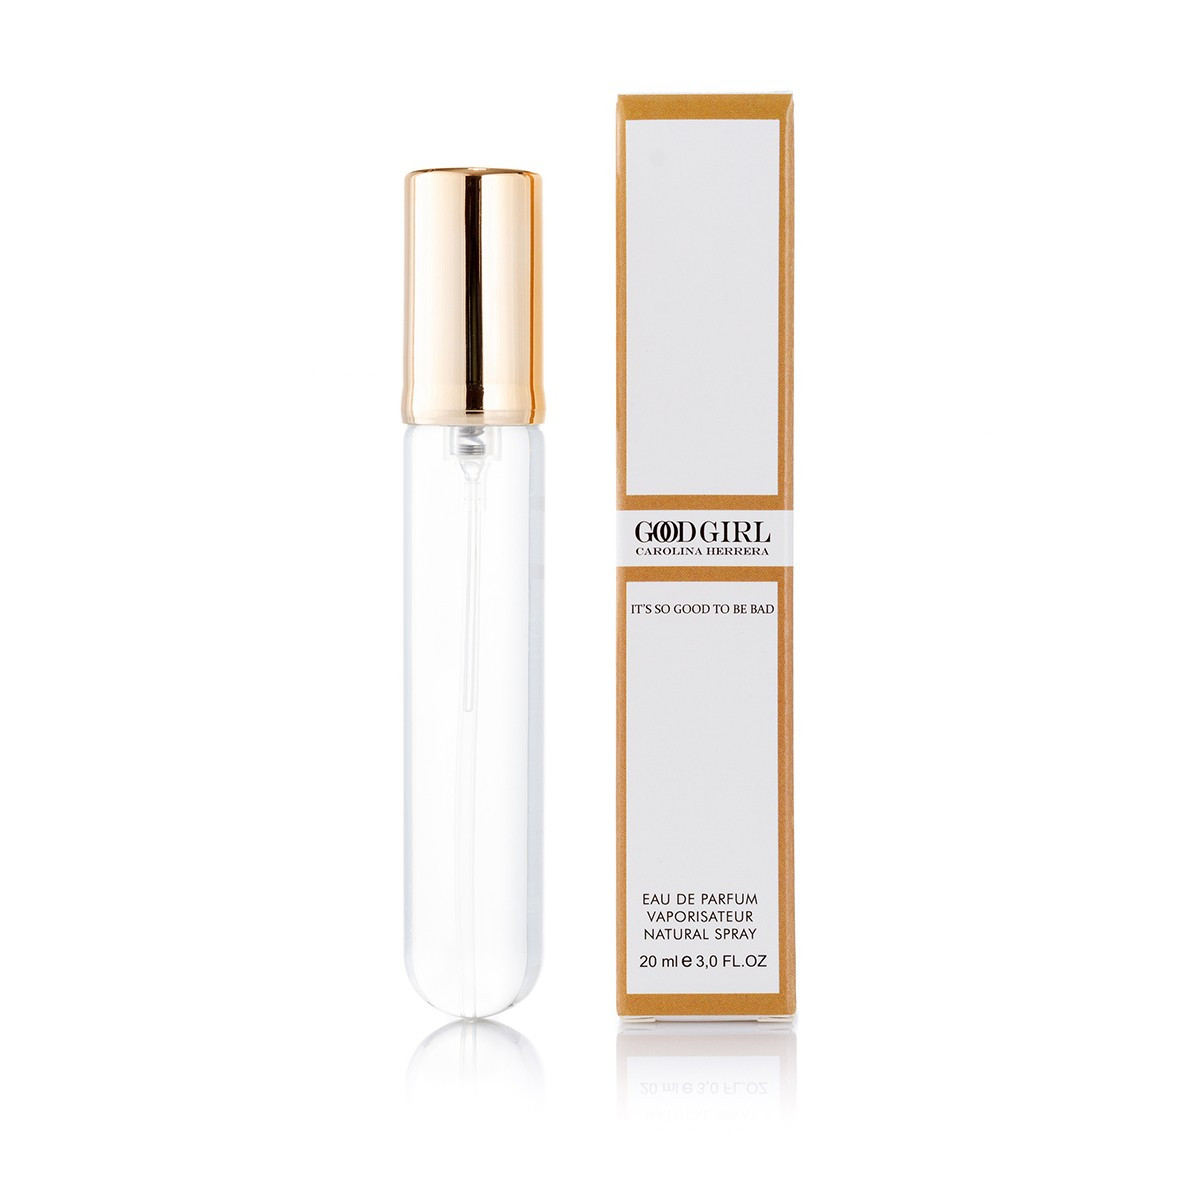 Carolina Herrera Good Girl White - Parfum Stick 20ml